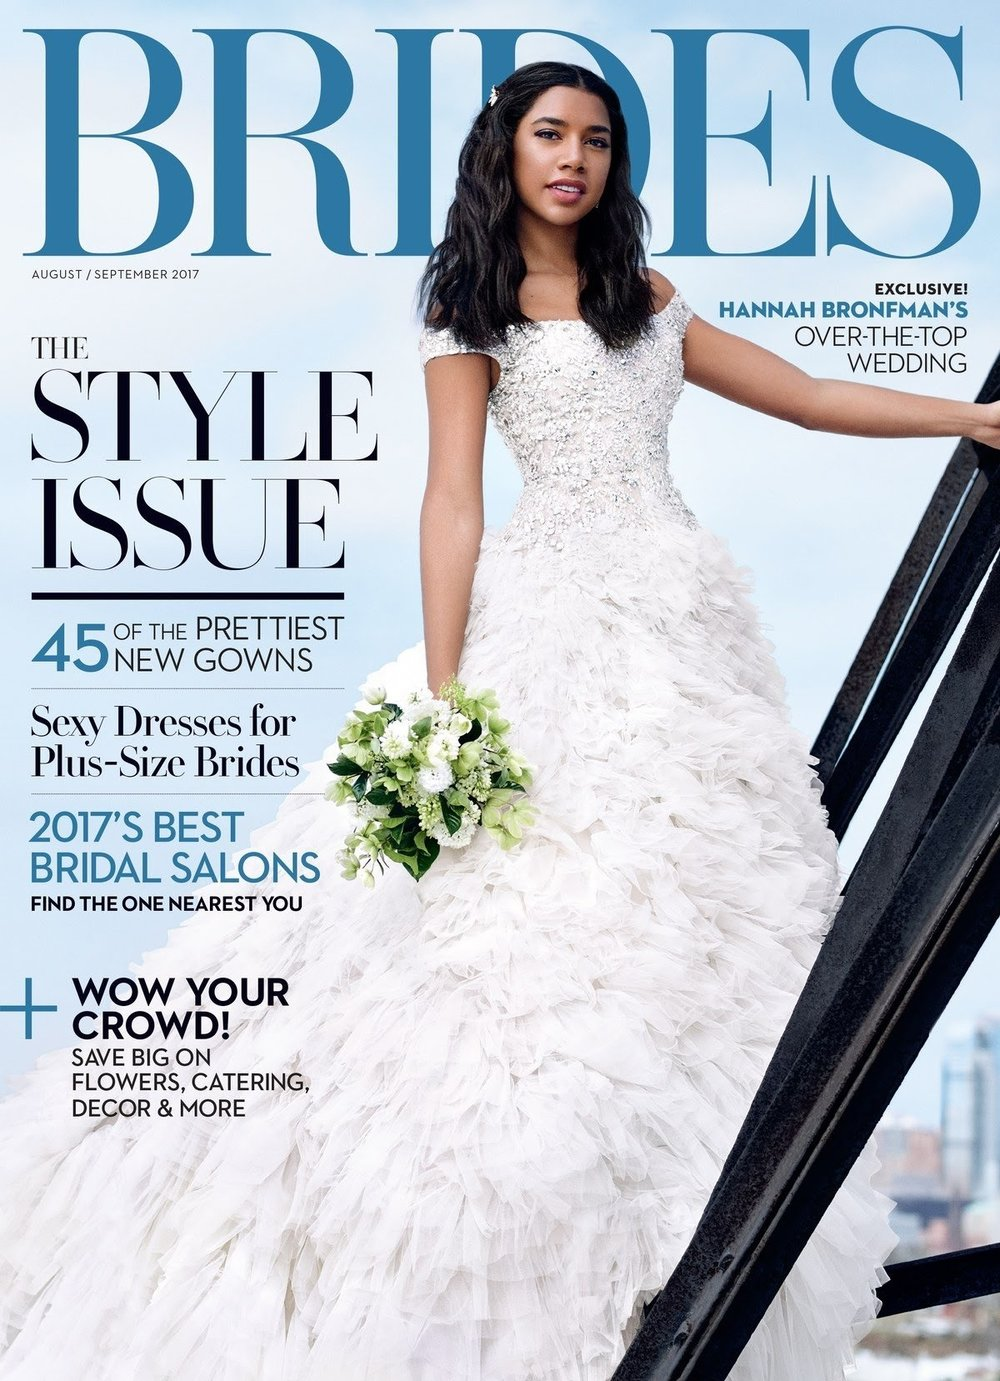 BRIDES MAGAZINE - 'Effortless style and sophistication coupled with superb quality make Marlena Dupelle's jewelry a must-have.'